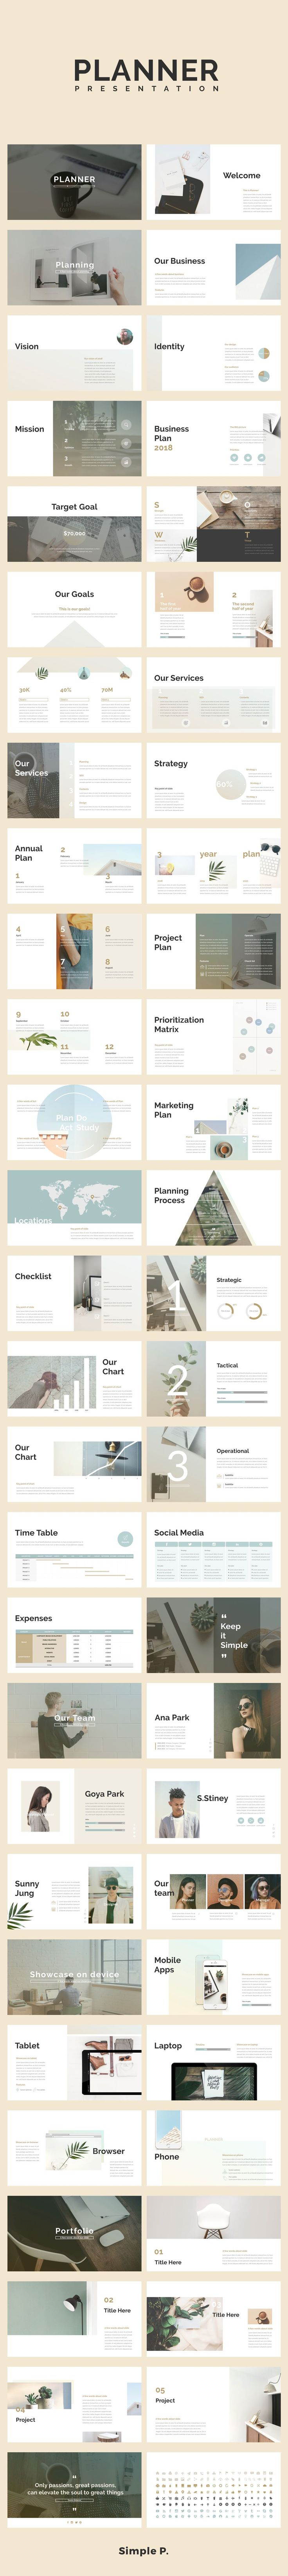 wedding planning checklist spreadsheet free%0A Planner Keynote Template       Planner  Business Planning  presentation   simple